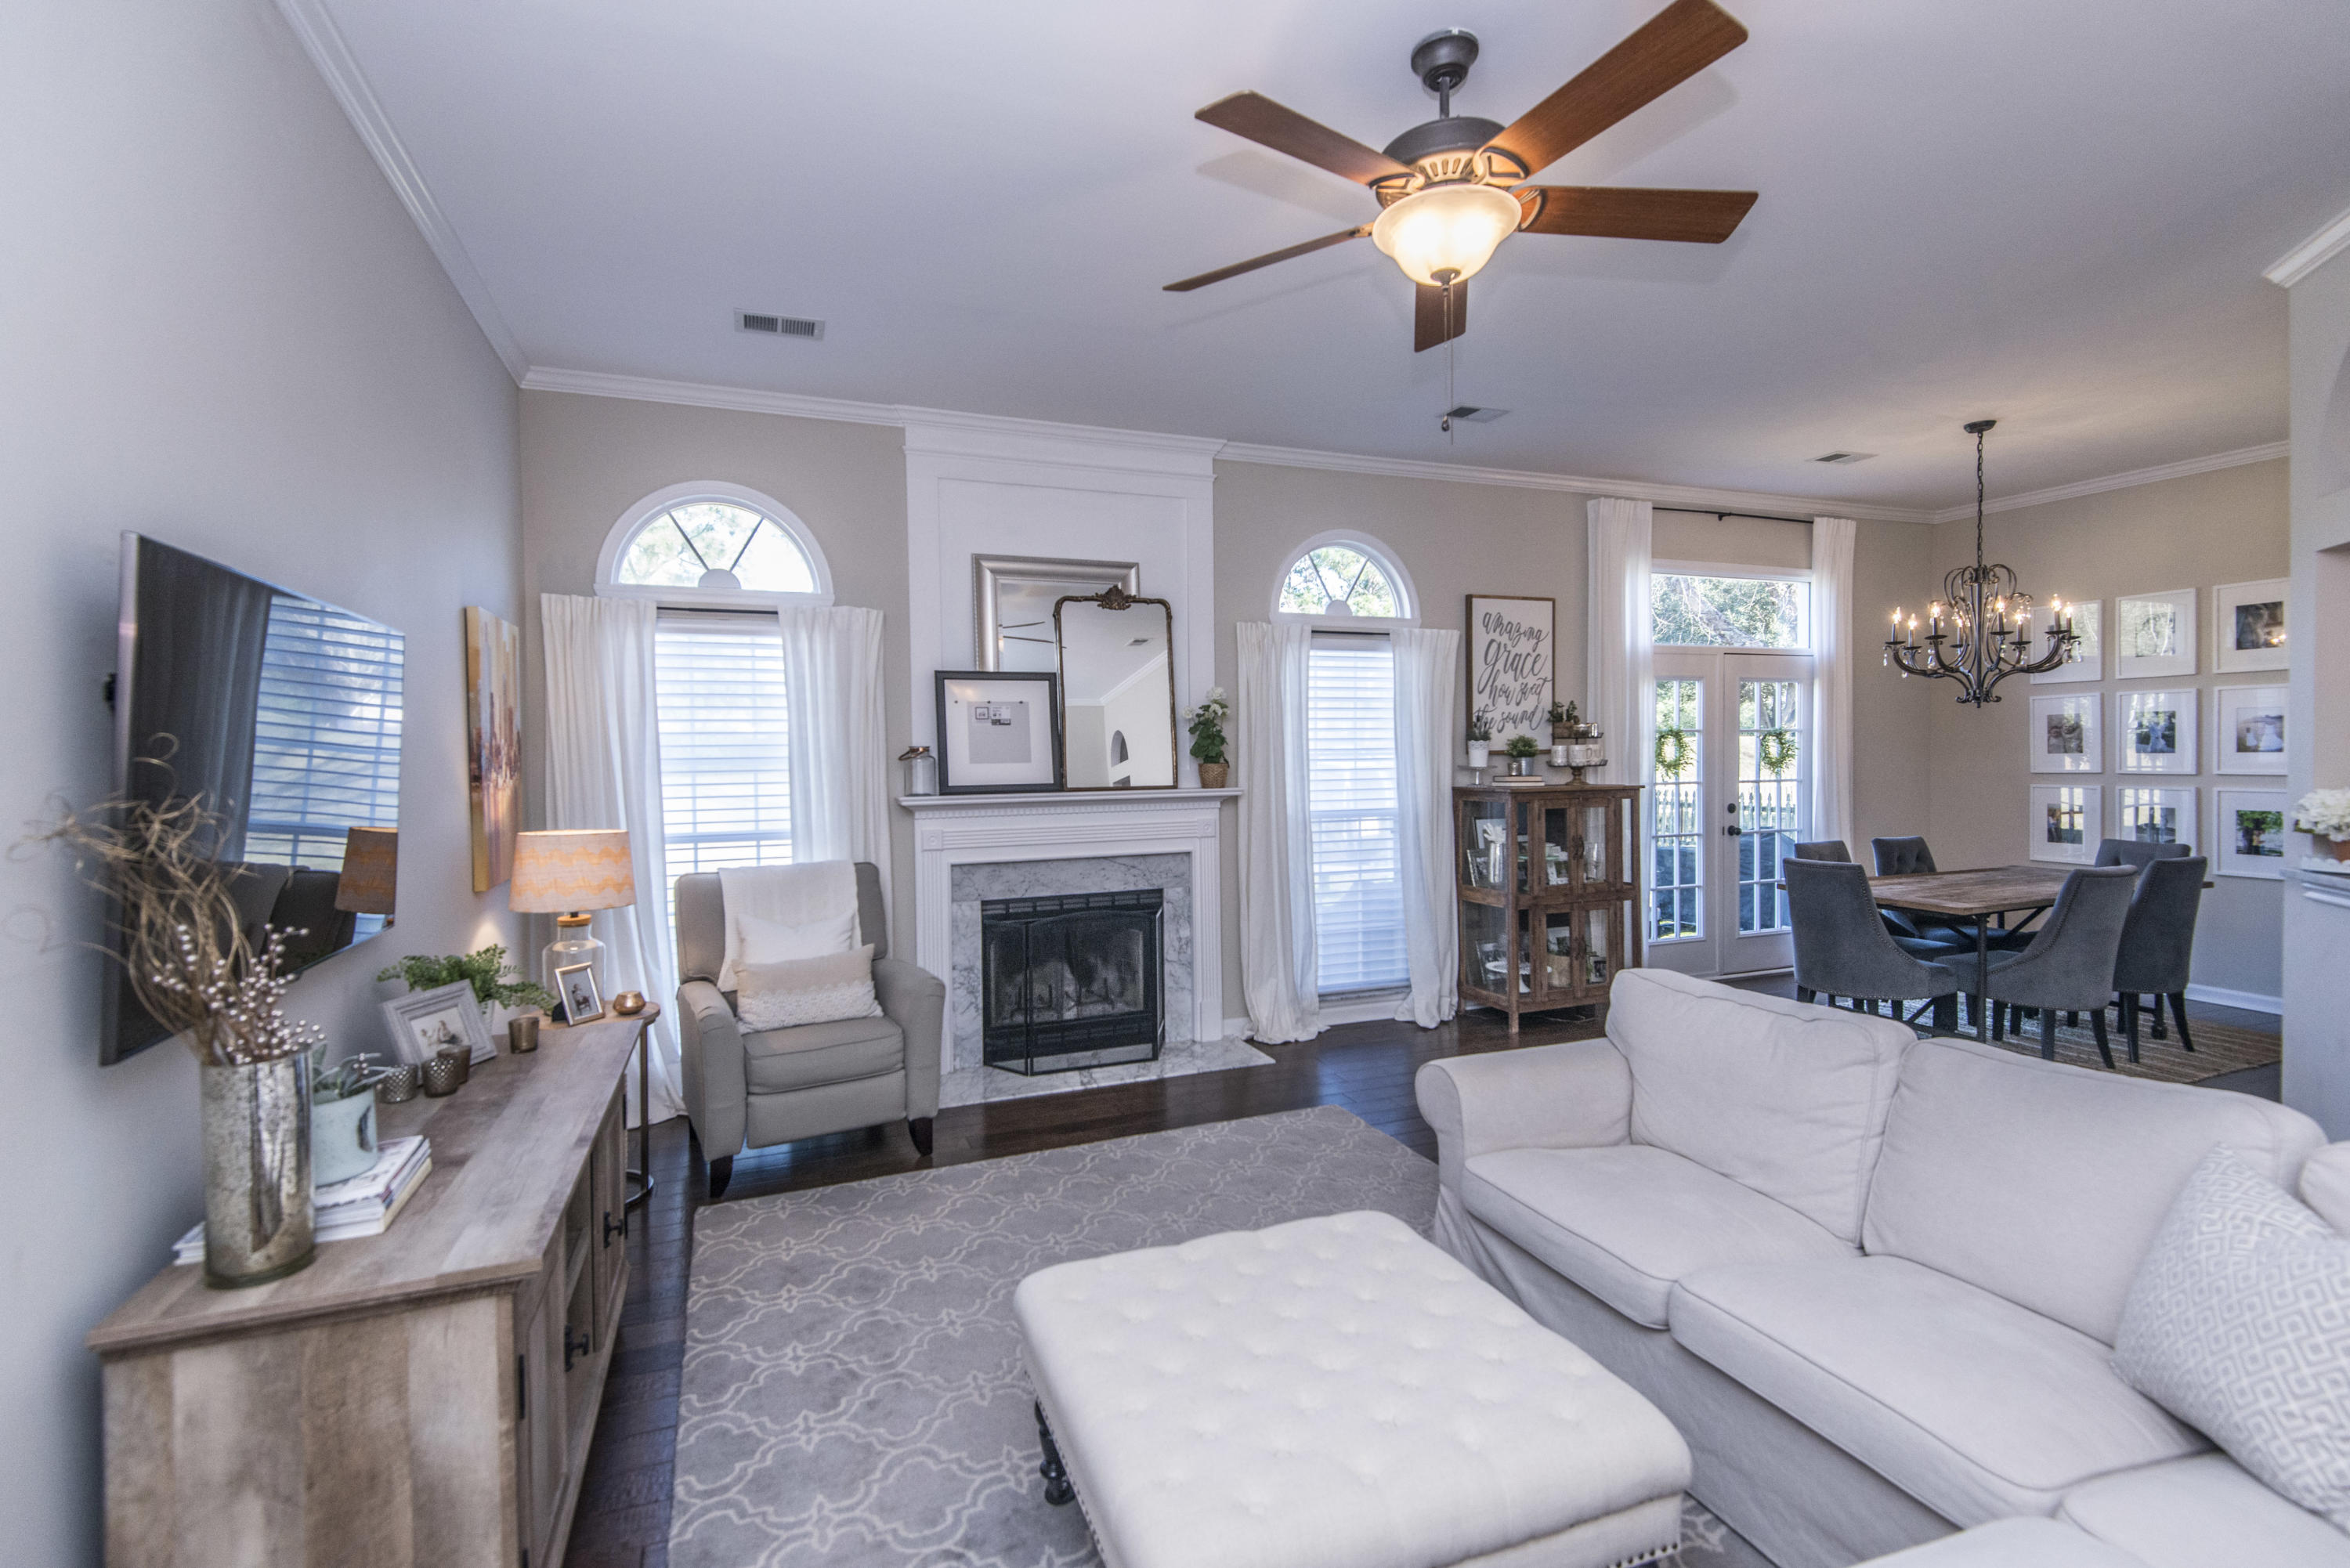 Belle Hall Homes For Sale - 438 Piazza, Mount Pleasant, SC - 20